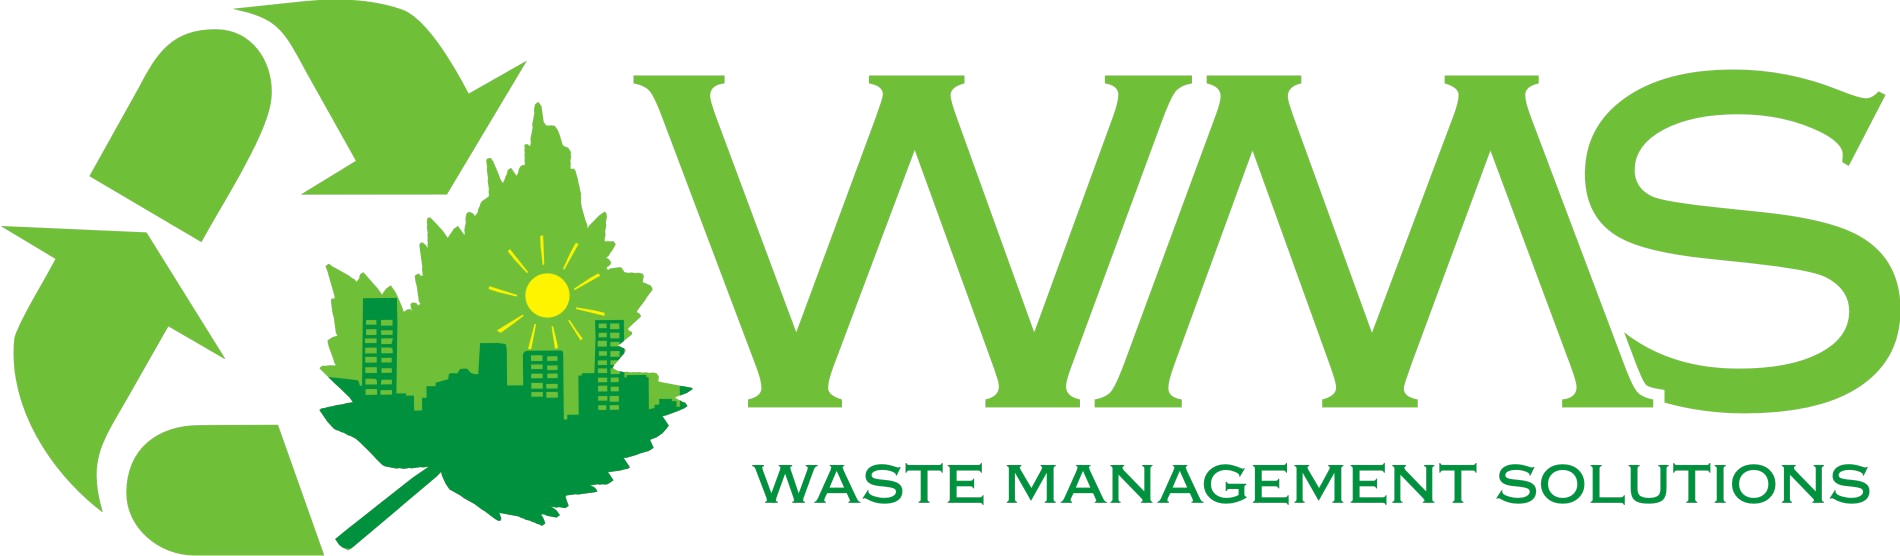 Solutii managementul deseurilor - Waste Management Solutions